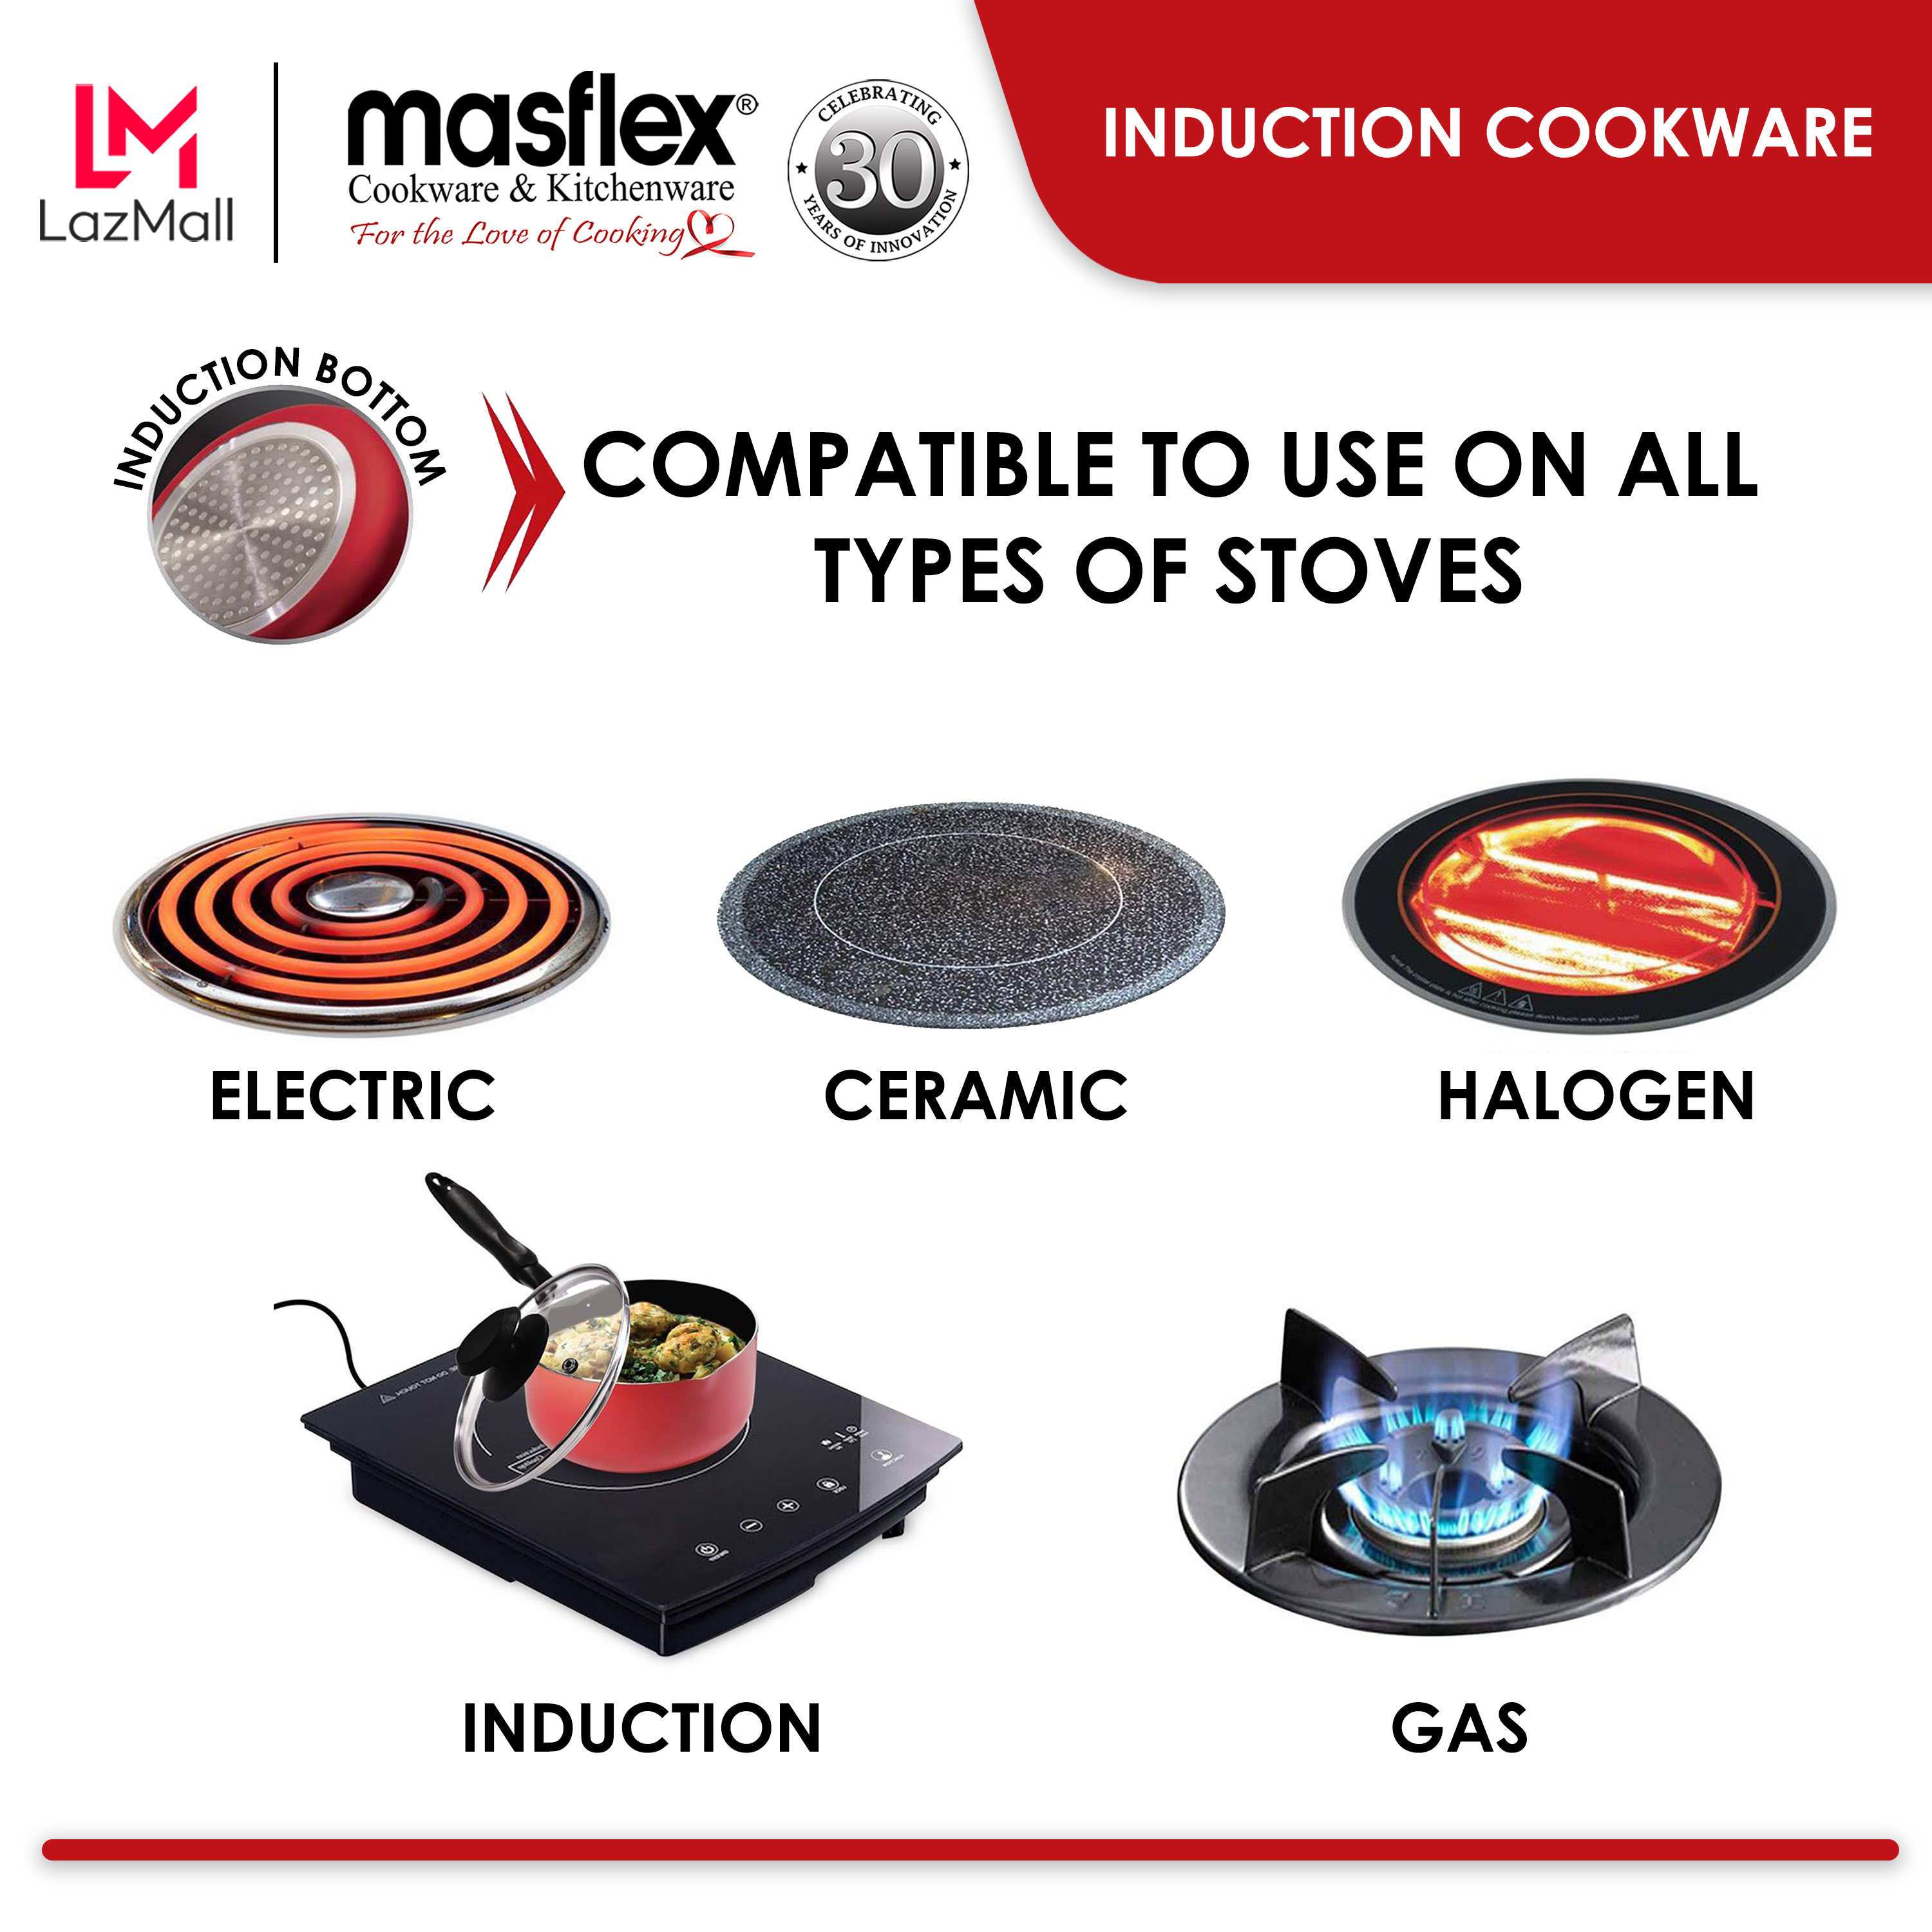 Masflex Classic Induction Series Signage